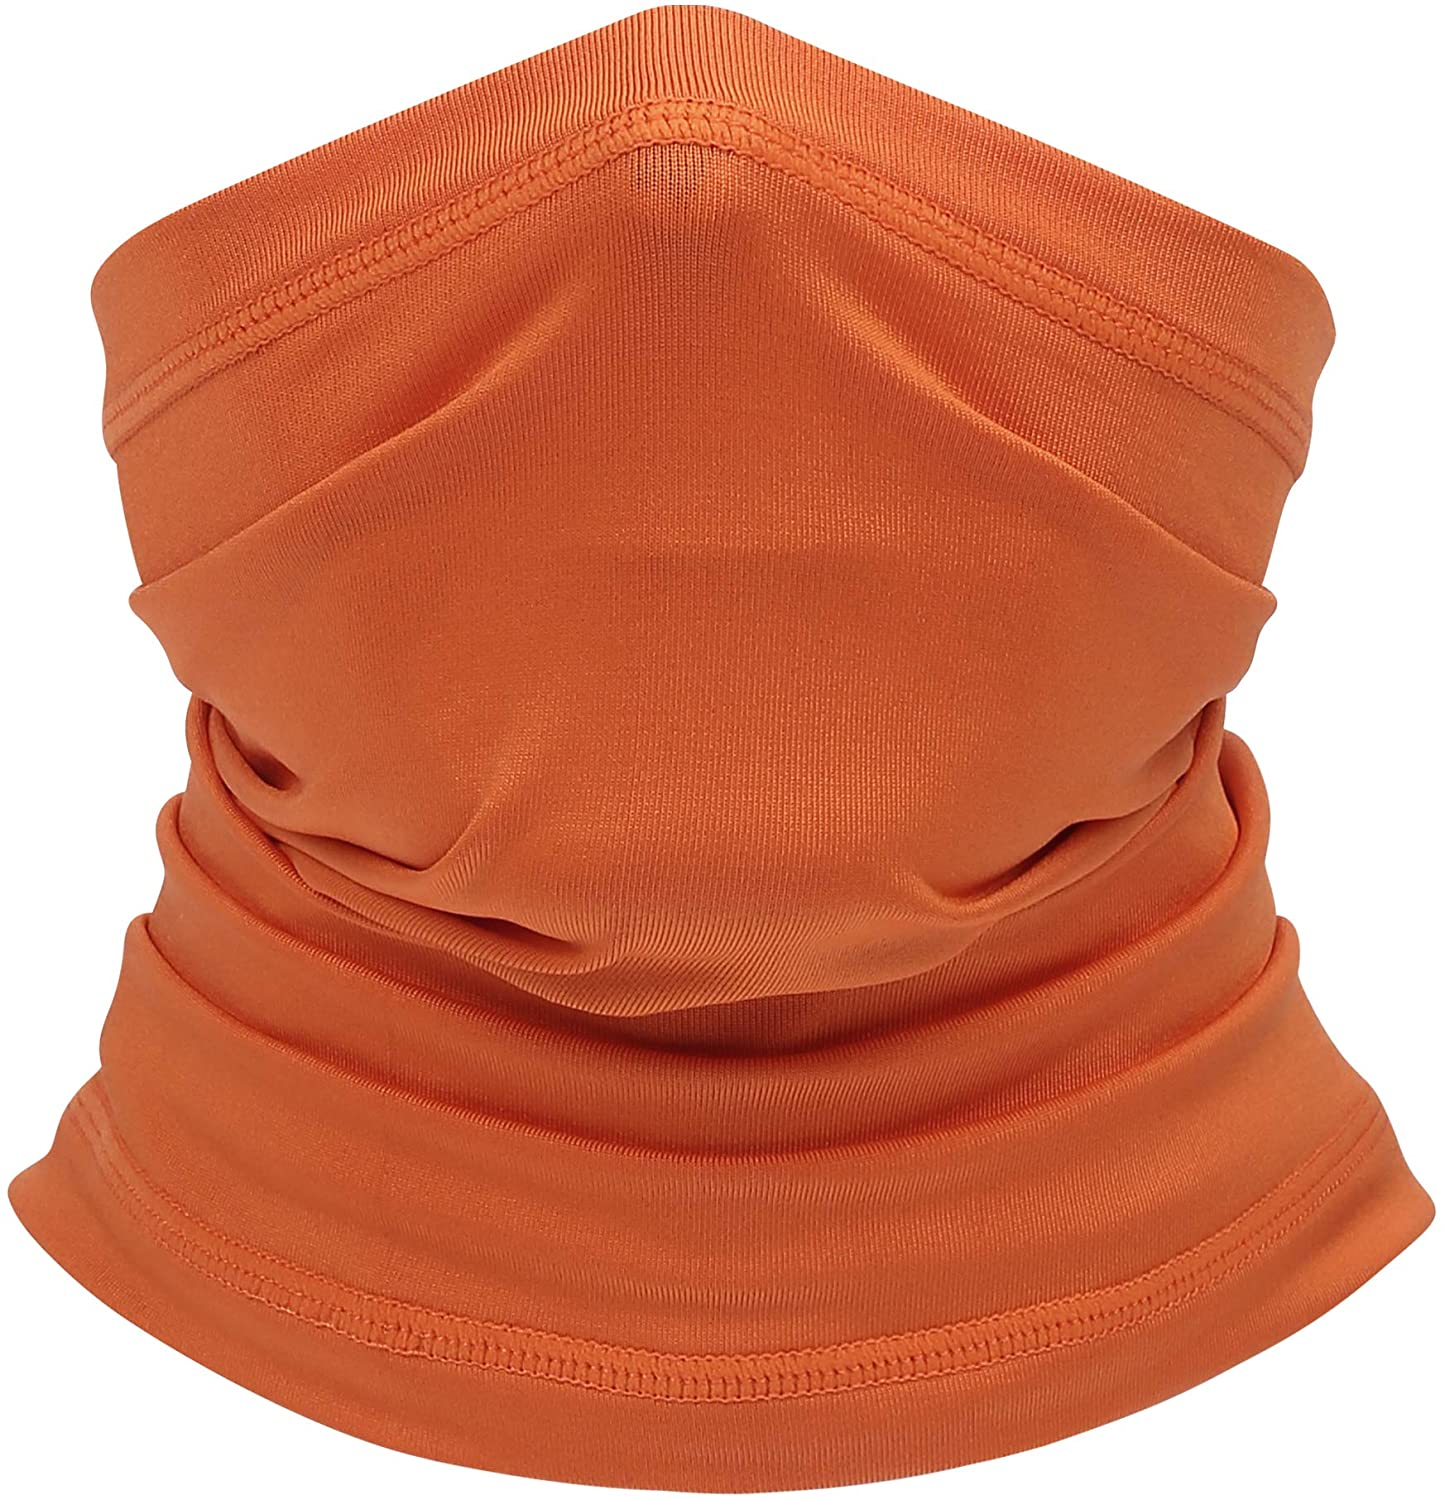 Cooling Summer Neck Gaiter Face Scarf/Neck Cover/for Cycling Bandana Headwear Hear Warp